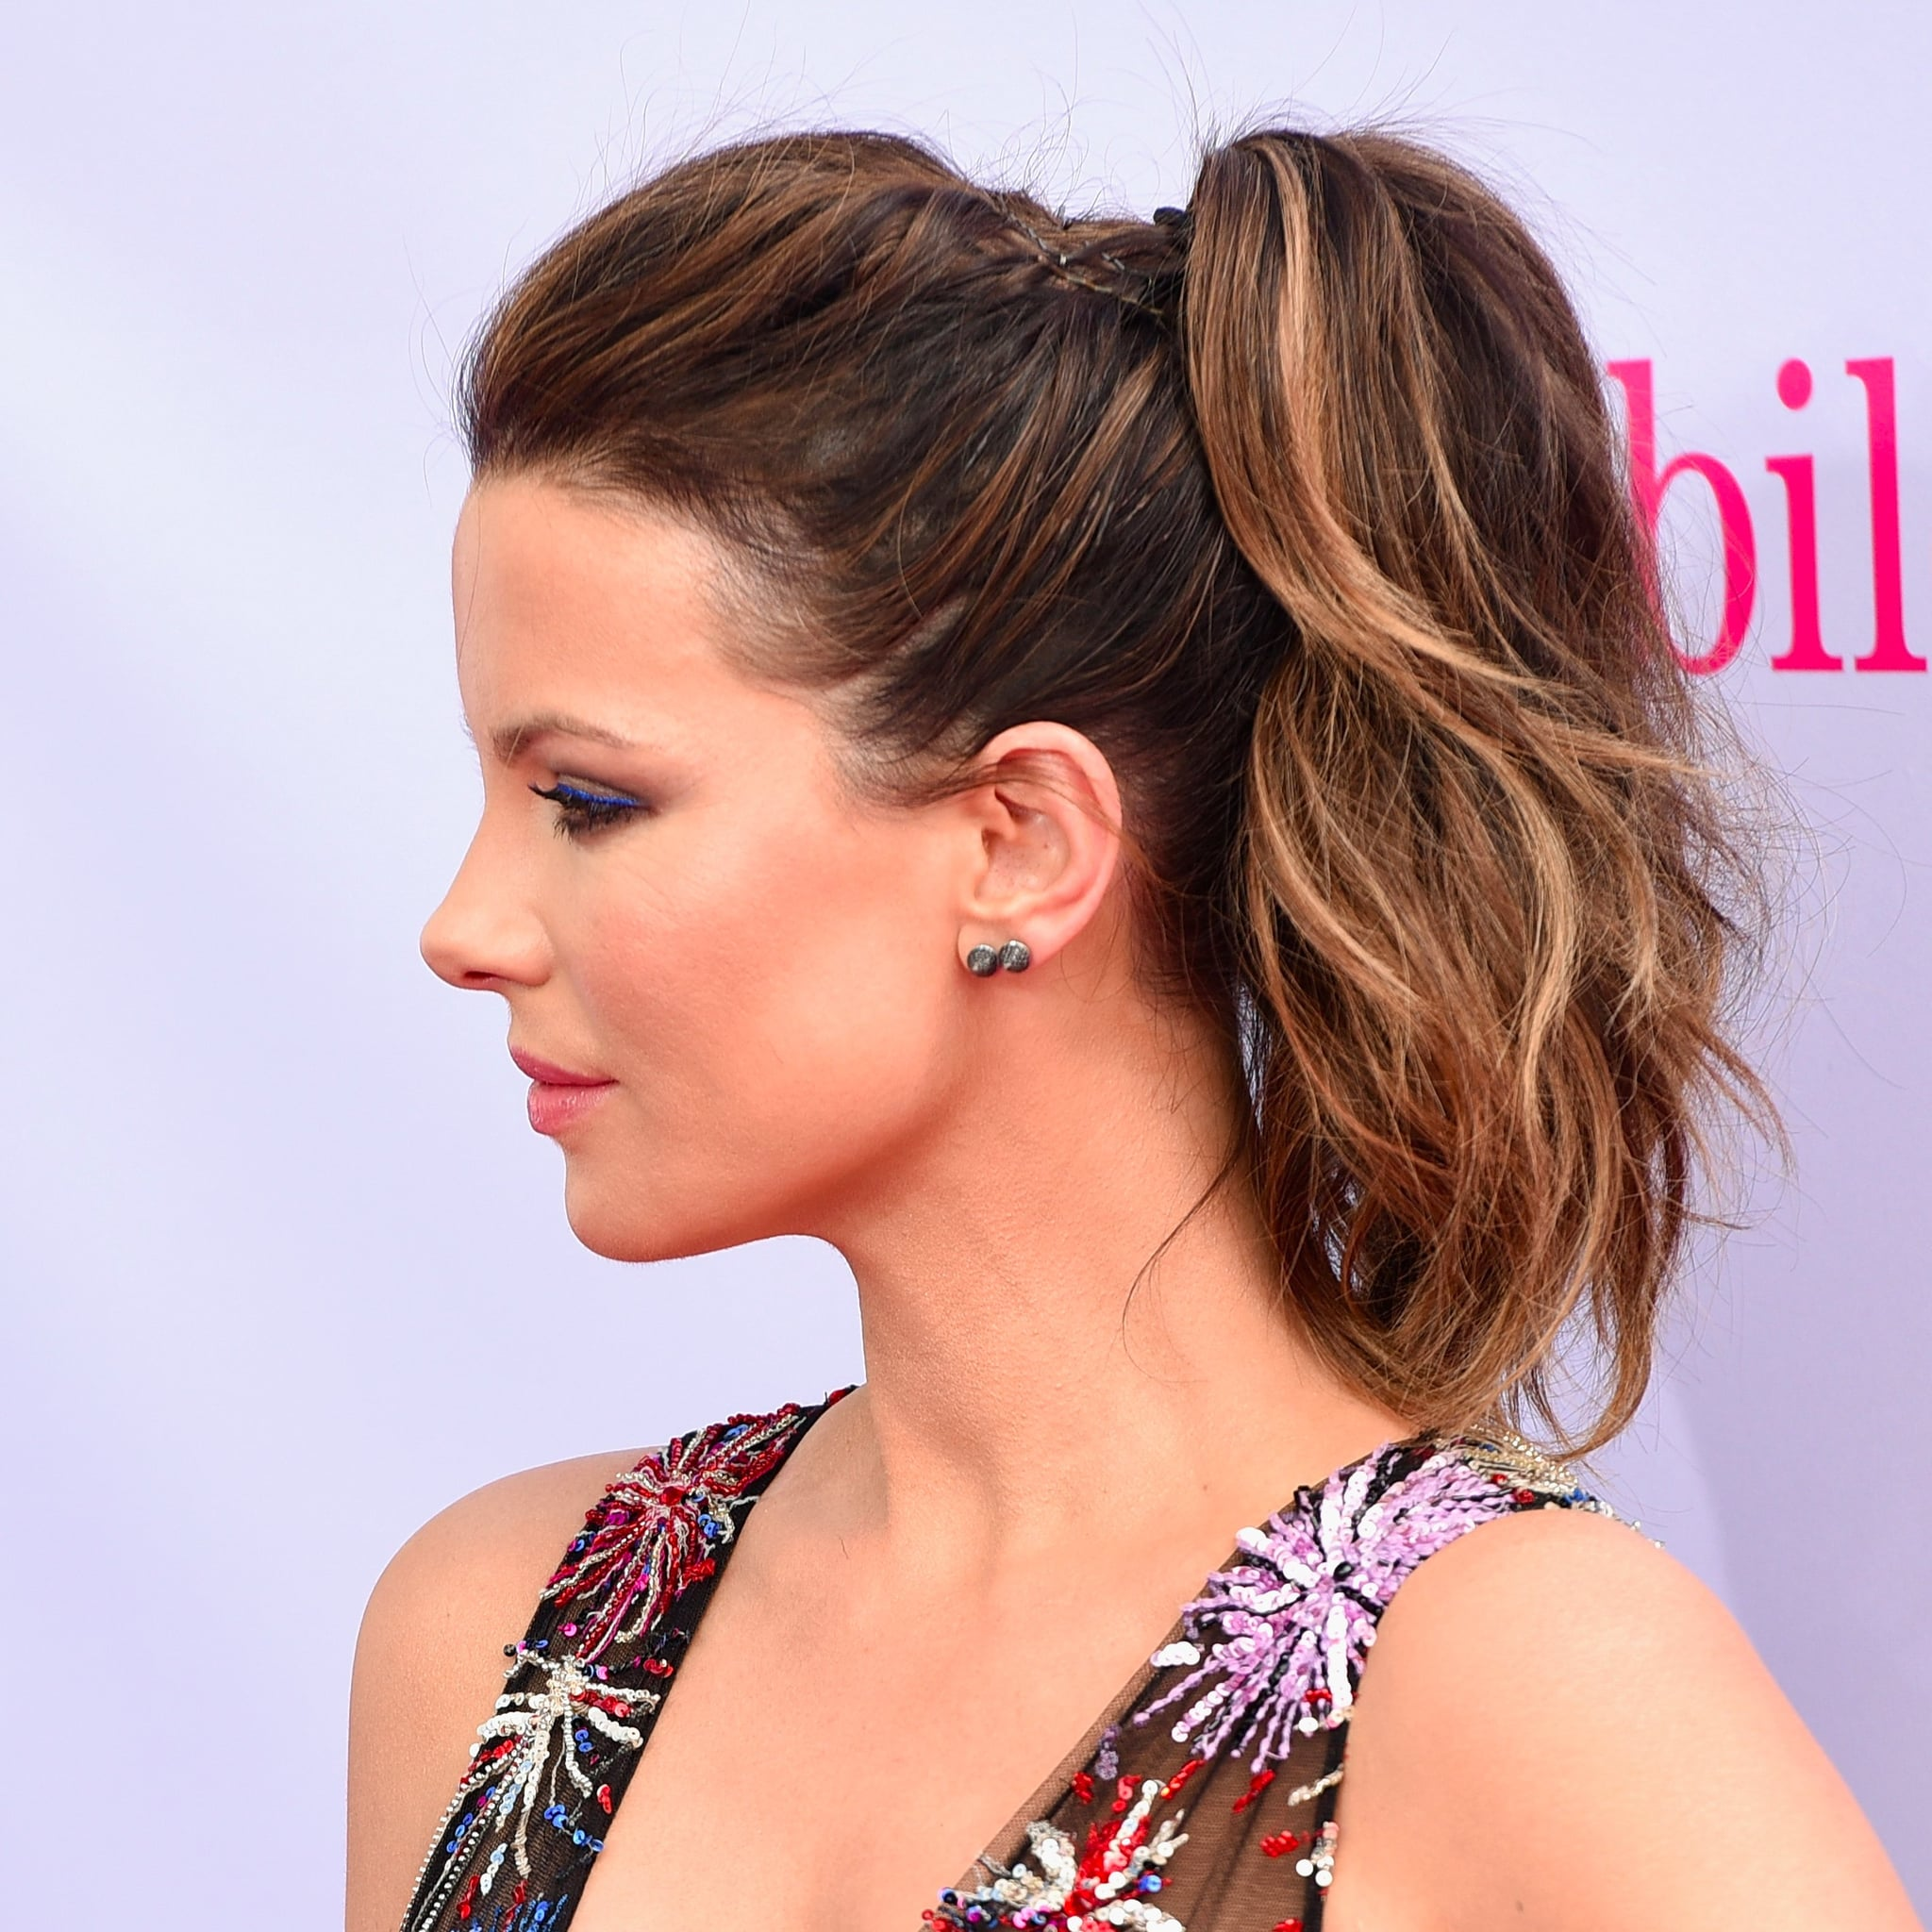 Hairstyles Long Hair In Hot Weather Popsugar Beauty